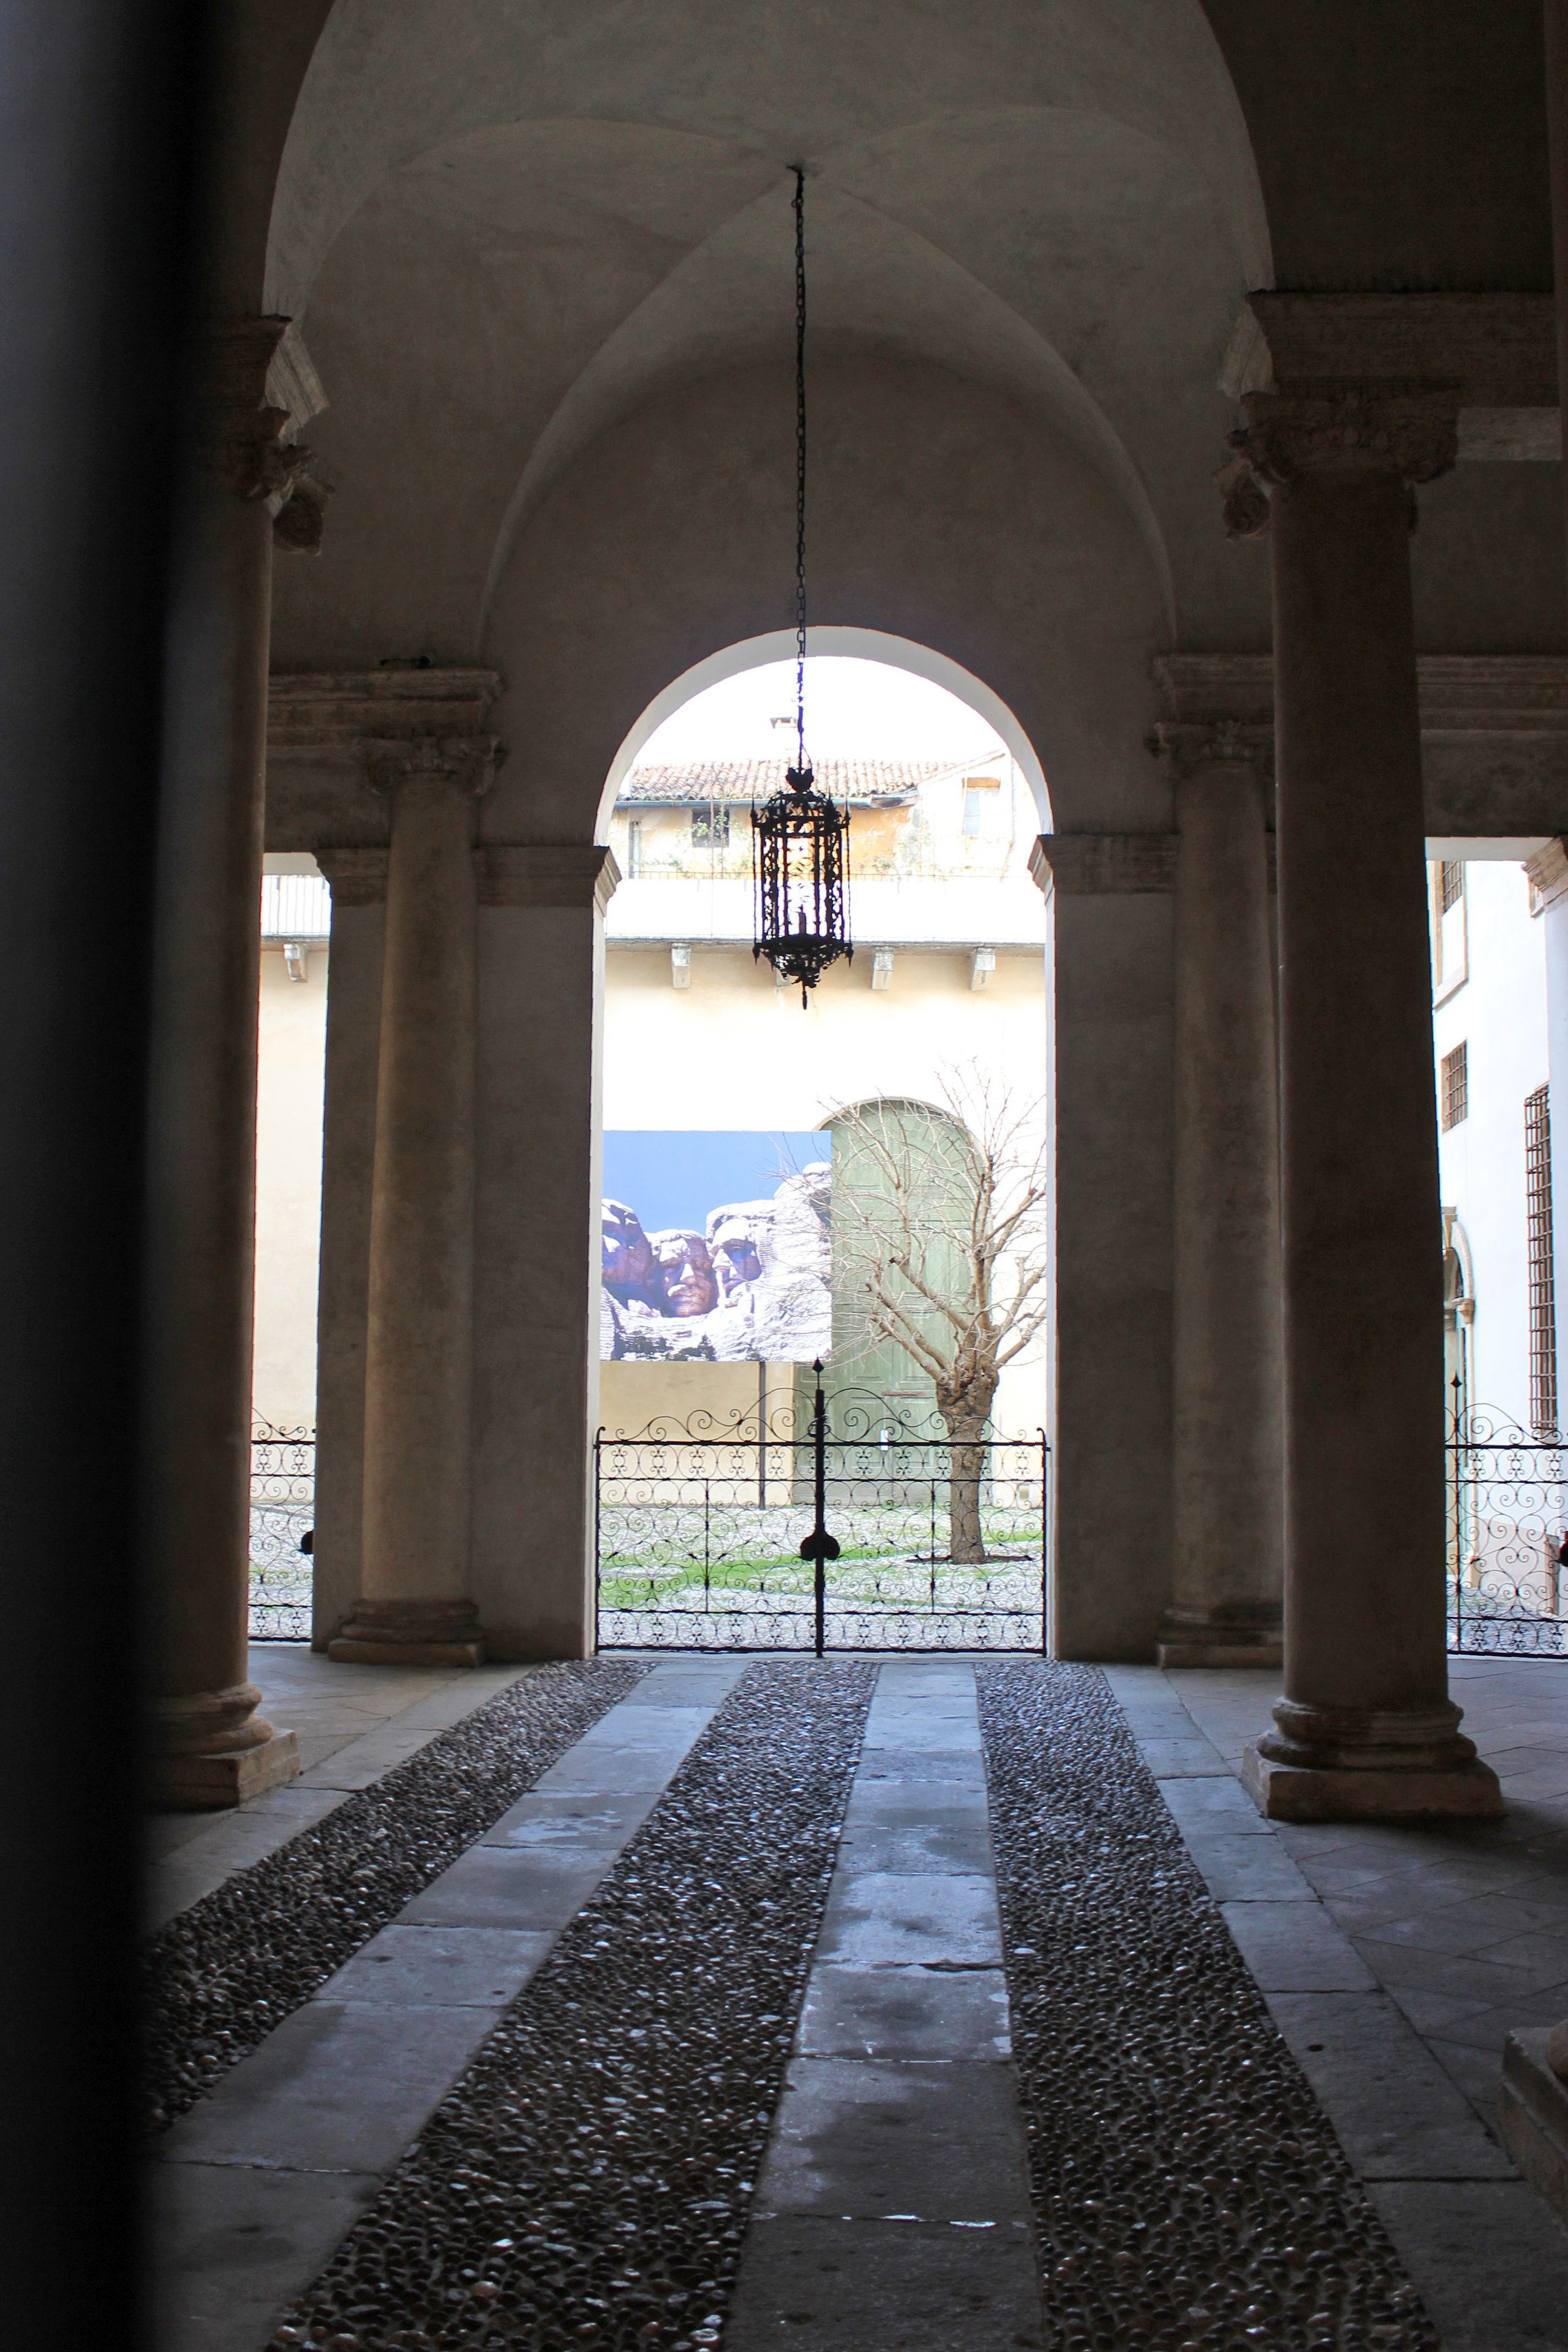 Entering the Palladio Museum with a giant image of Mount Rushmore in the courtyard.